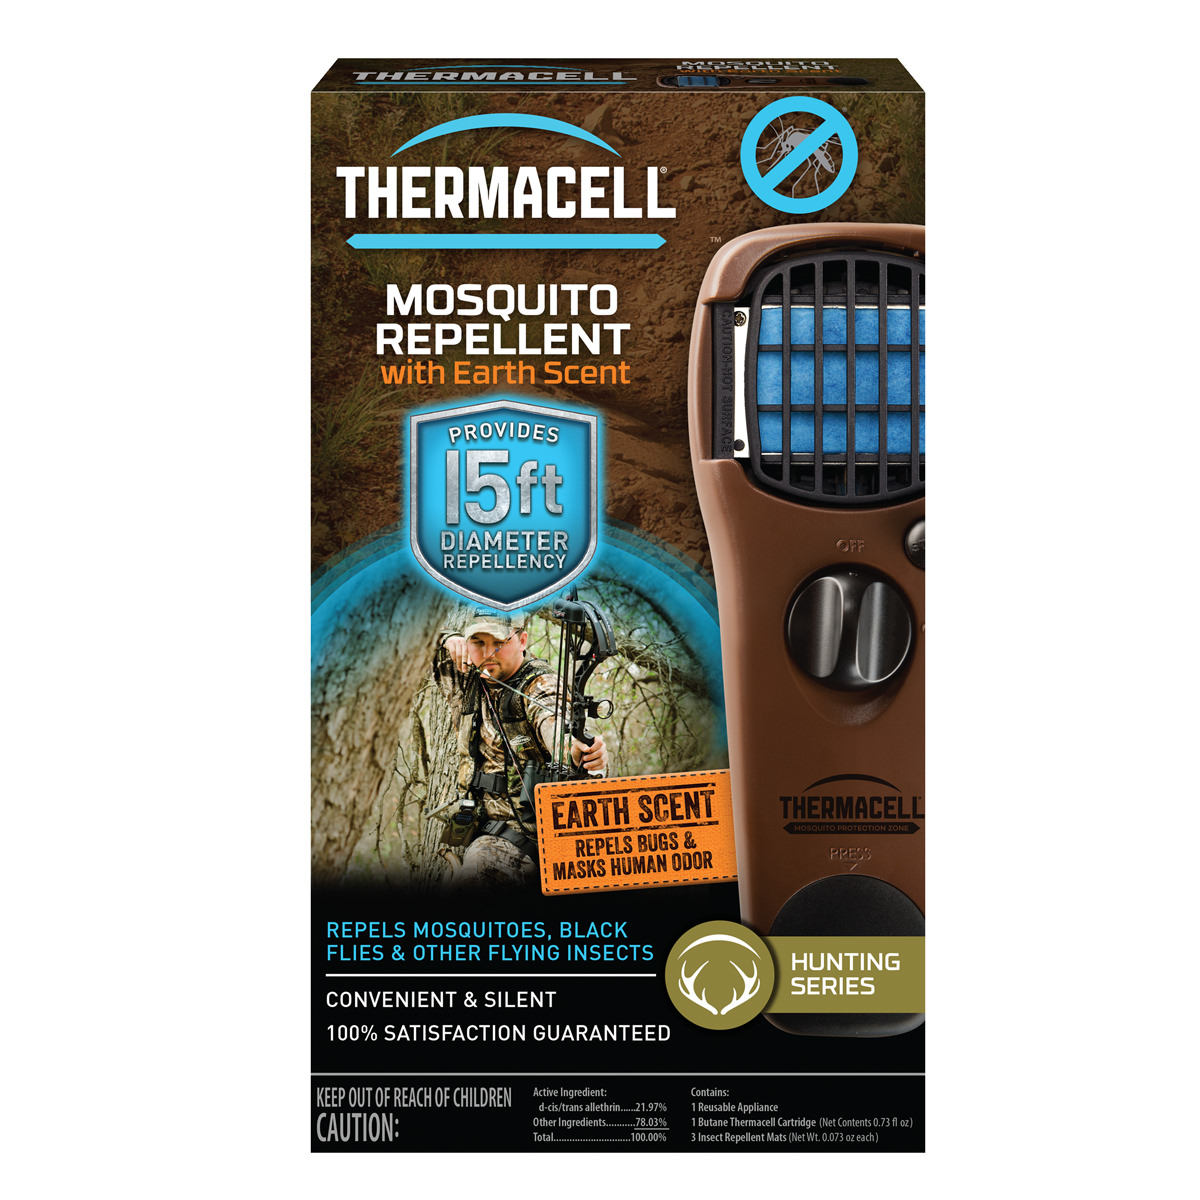 Thermacell Portable Mosquito Repeller, Woodland Camo, 12 Hr Protection    Walmart.com